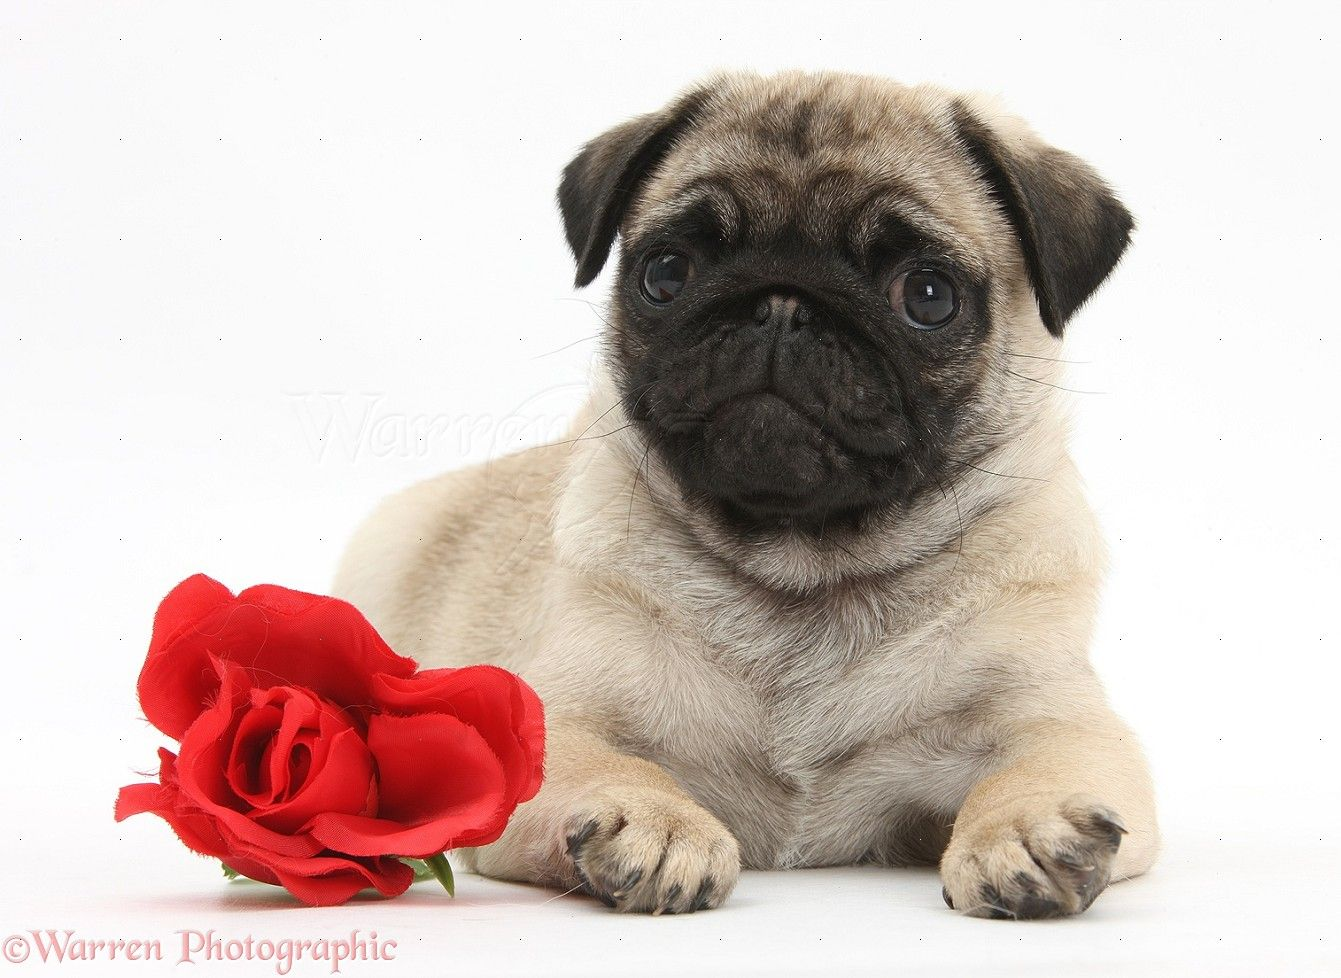 Puppies Pug Pug Puppy With A Red Rose Pug Puppy Pugs Cute Pugs